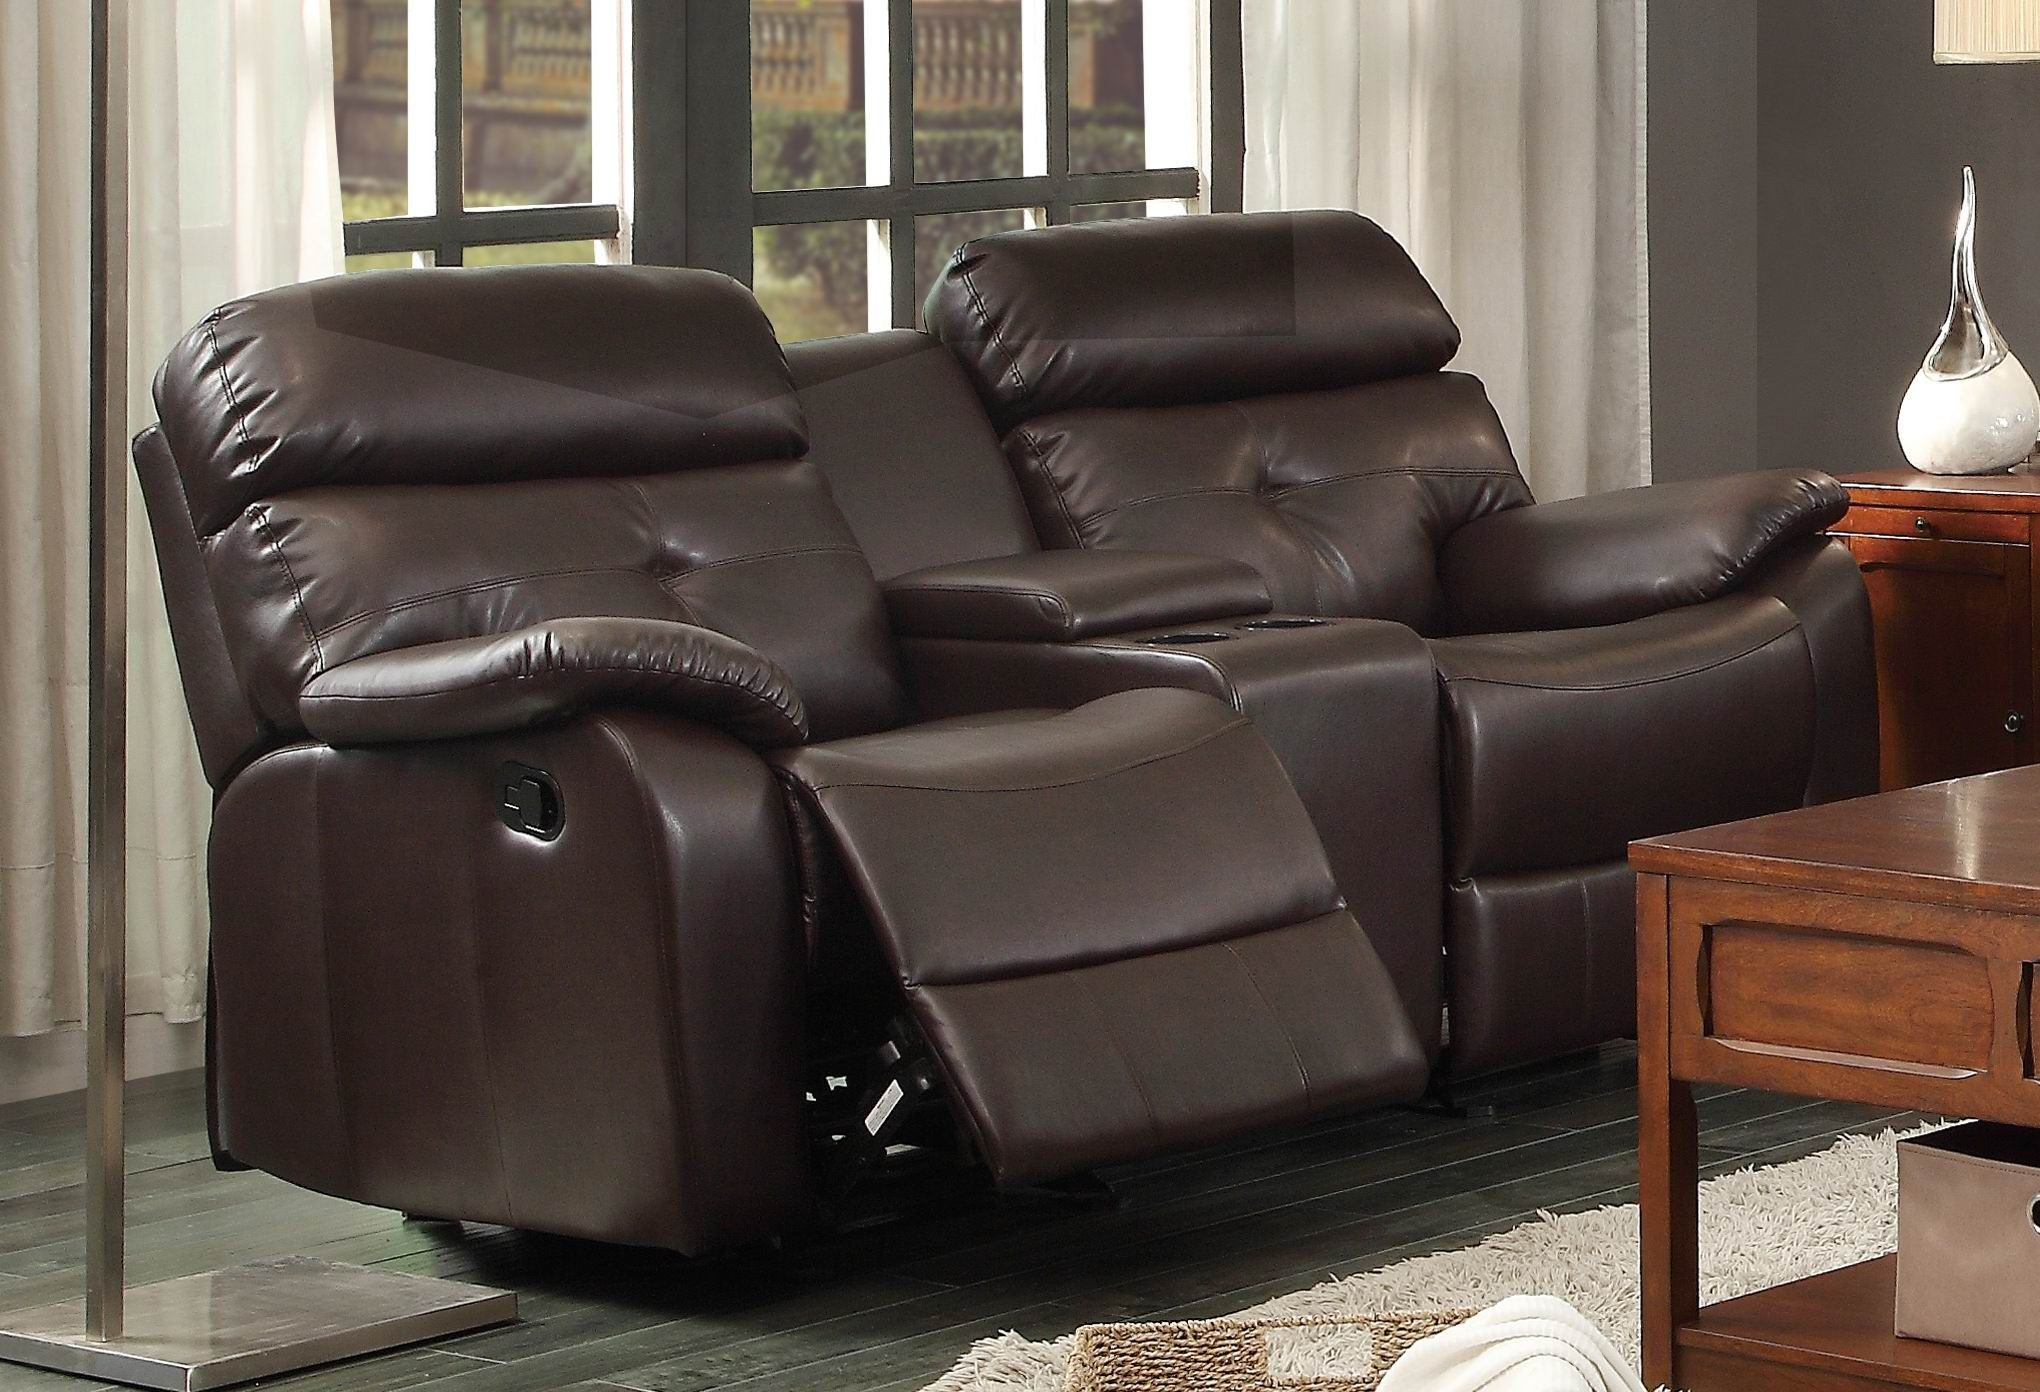 Evana Double Glider Reclining Loveseat With Console From Homelegance 12785 Coleman Furniture